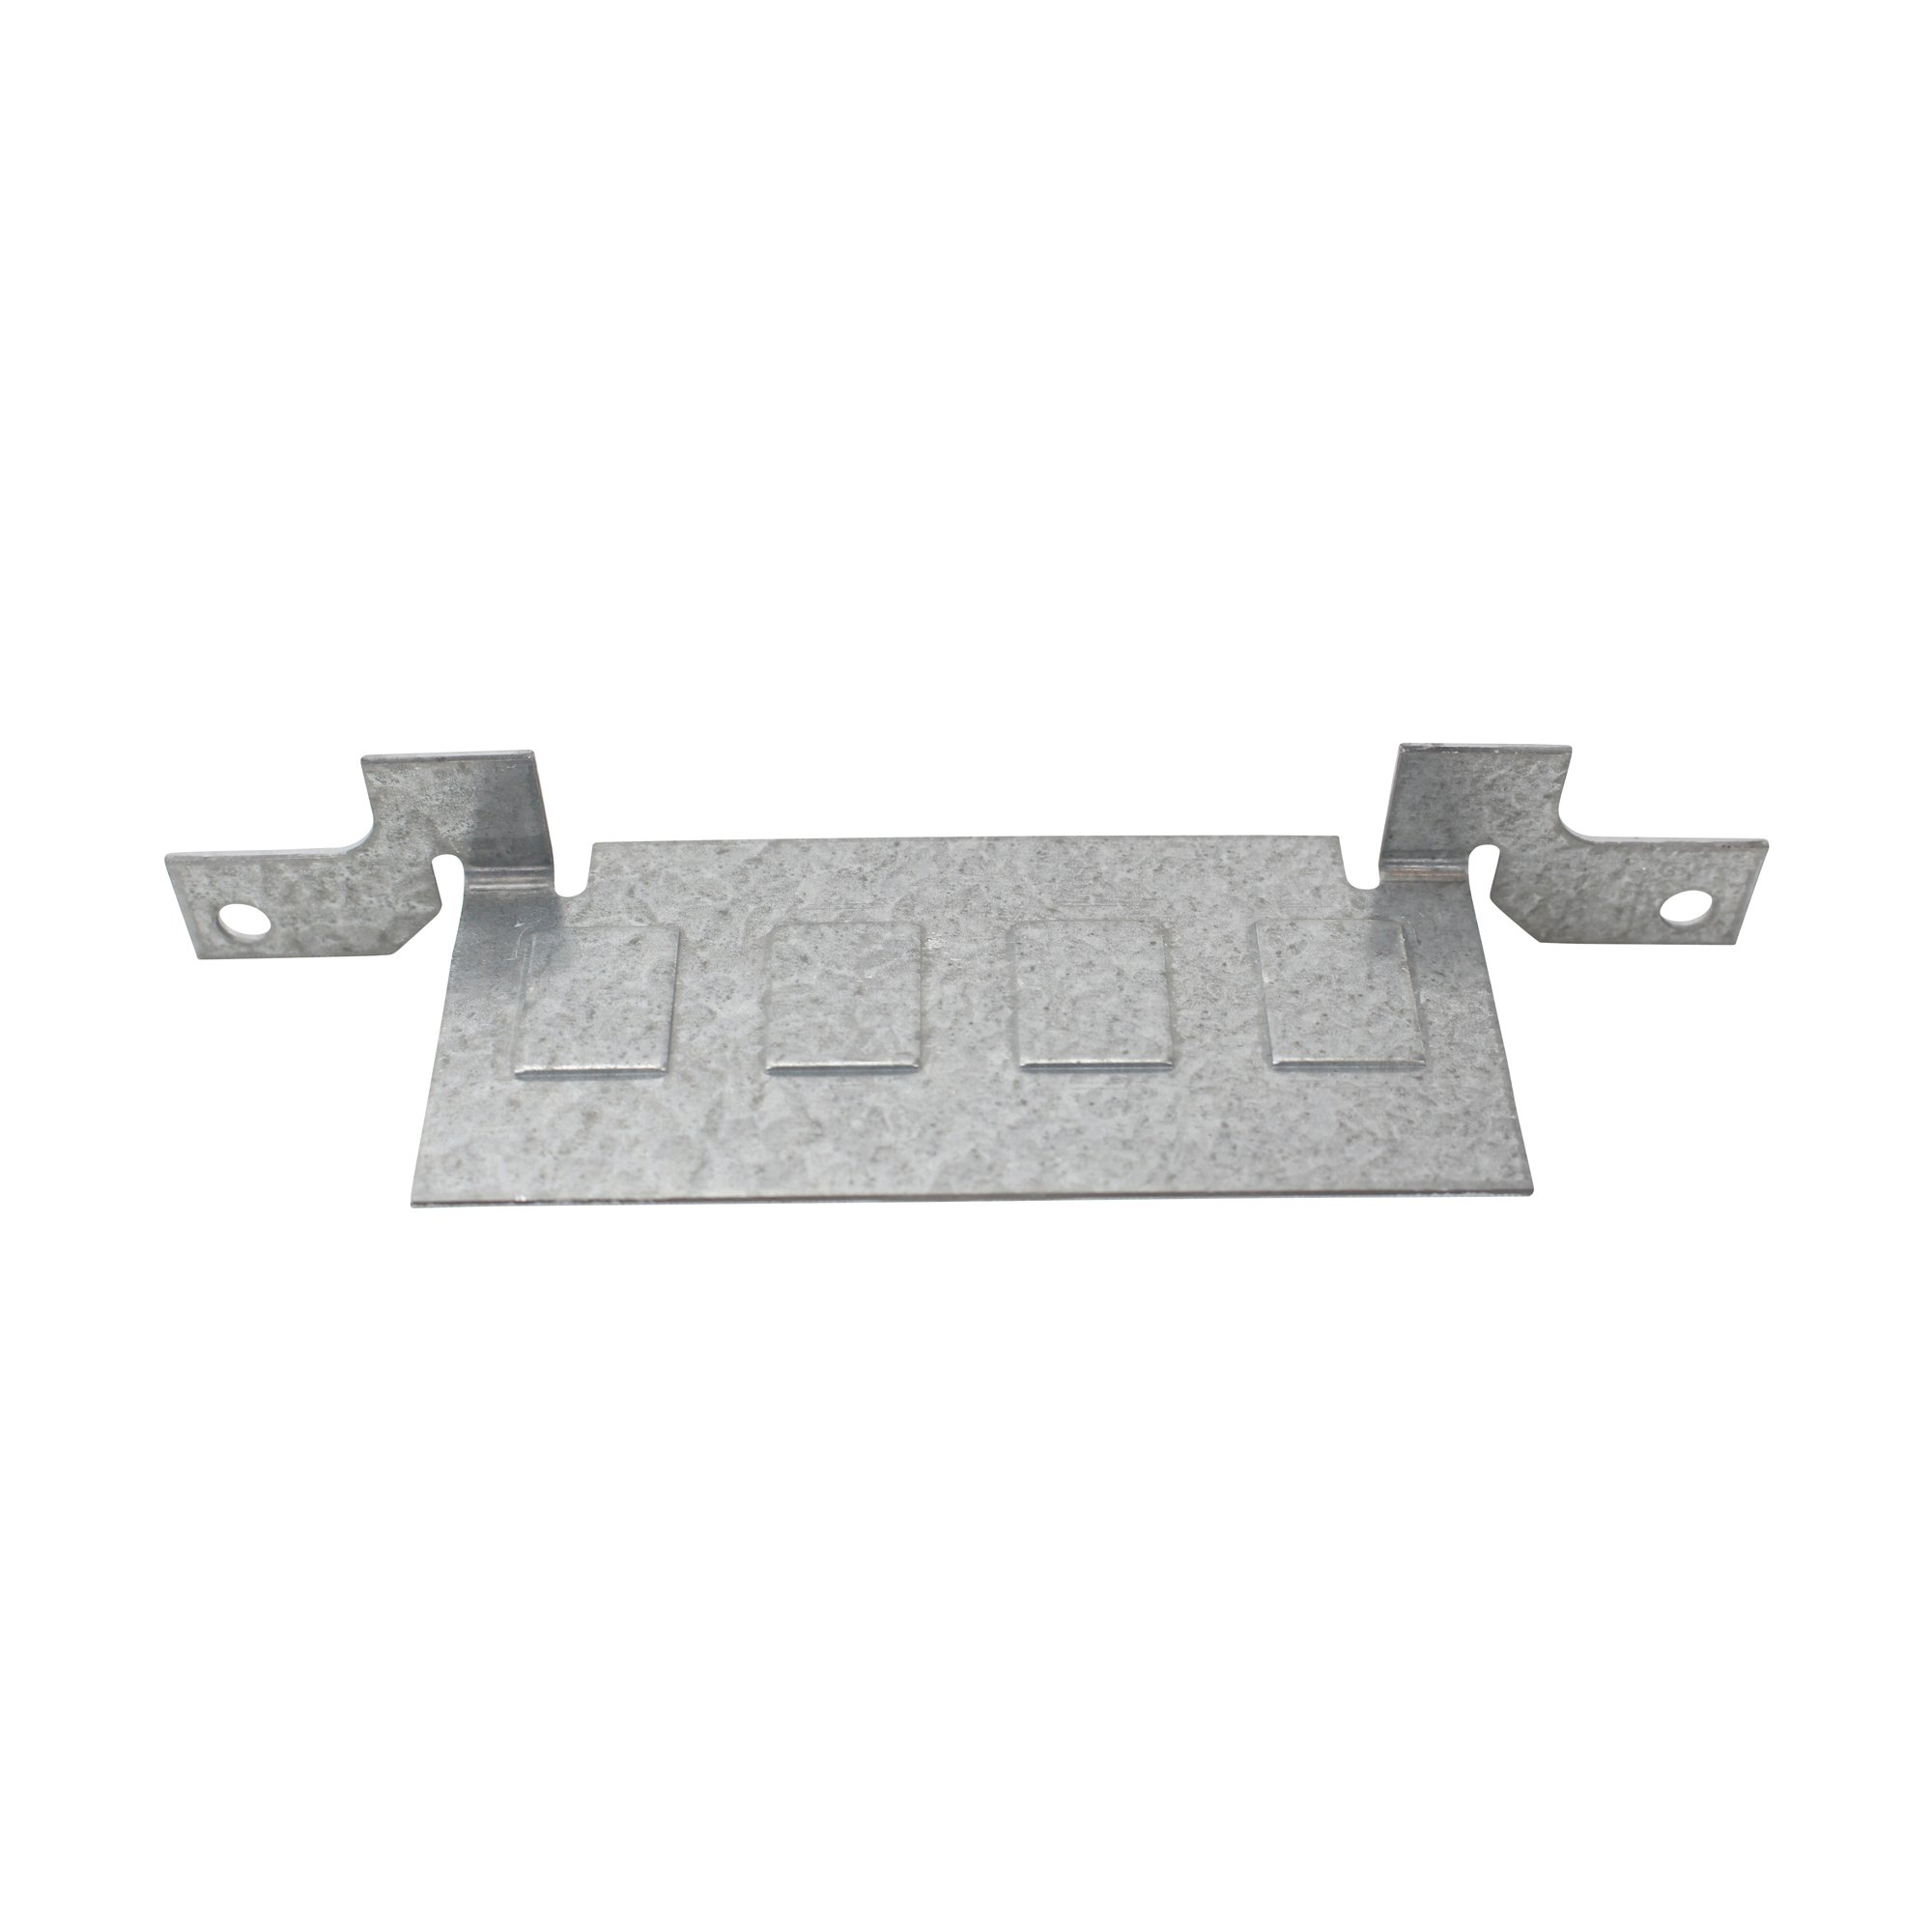 Wiremold DTB-2-4TKO Steel Communication Bracket 9/16 Inch x 3/4 Inch RFB4 by Wiremold (Image #2)